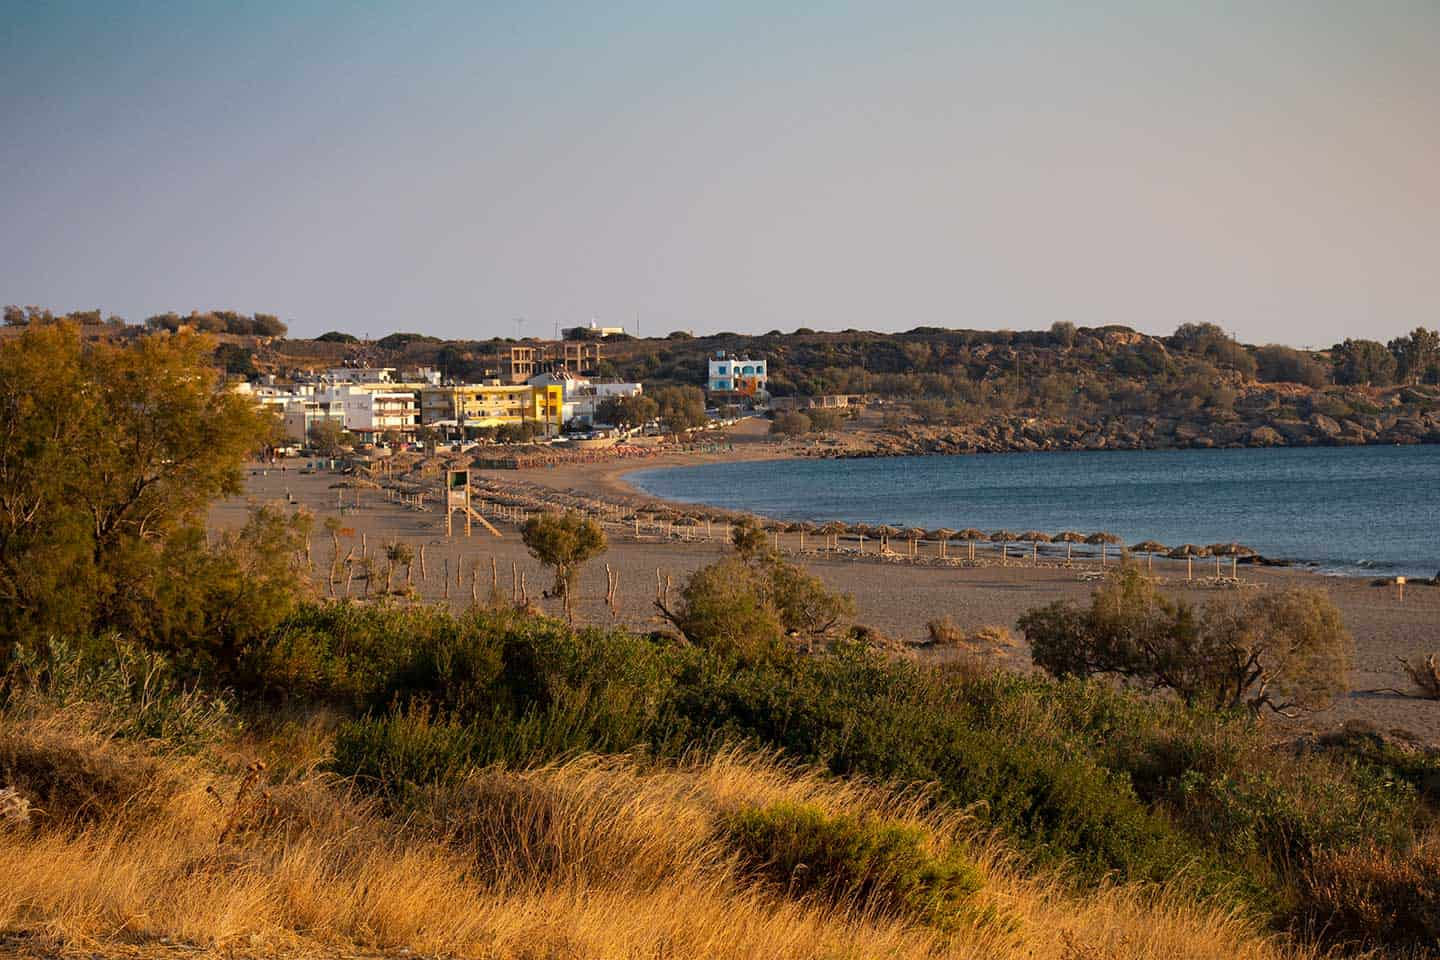 Weather in Crete Image of Pachia Ammos beach Paleochora on a warm October evening